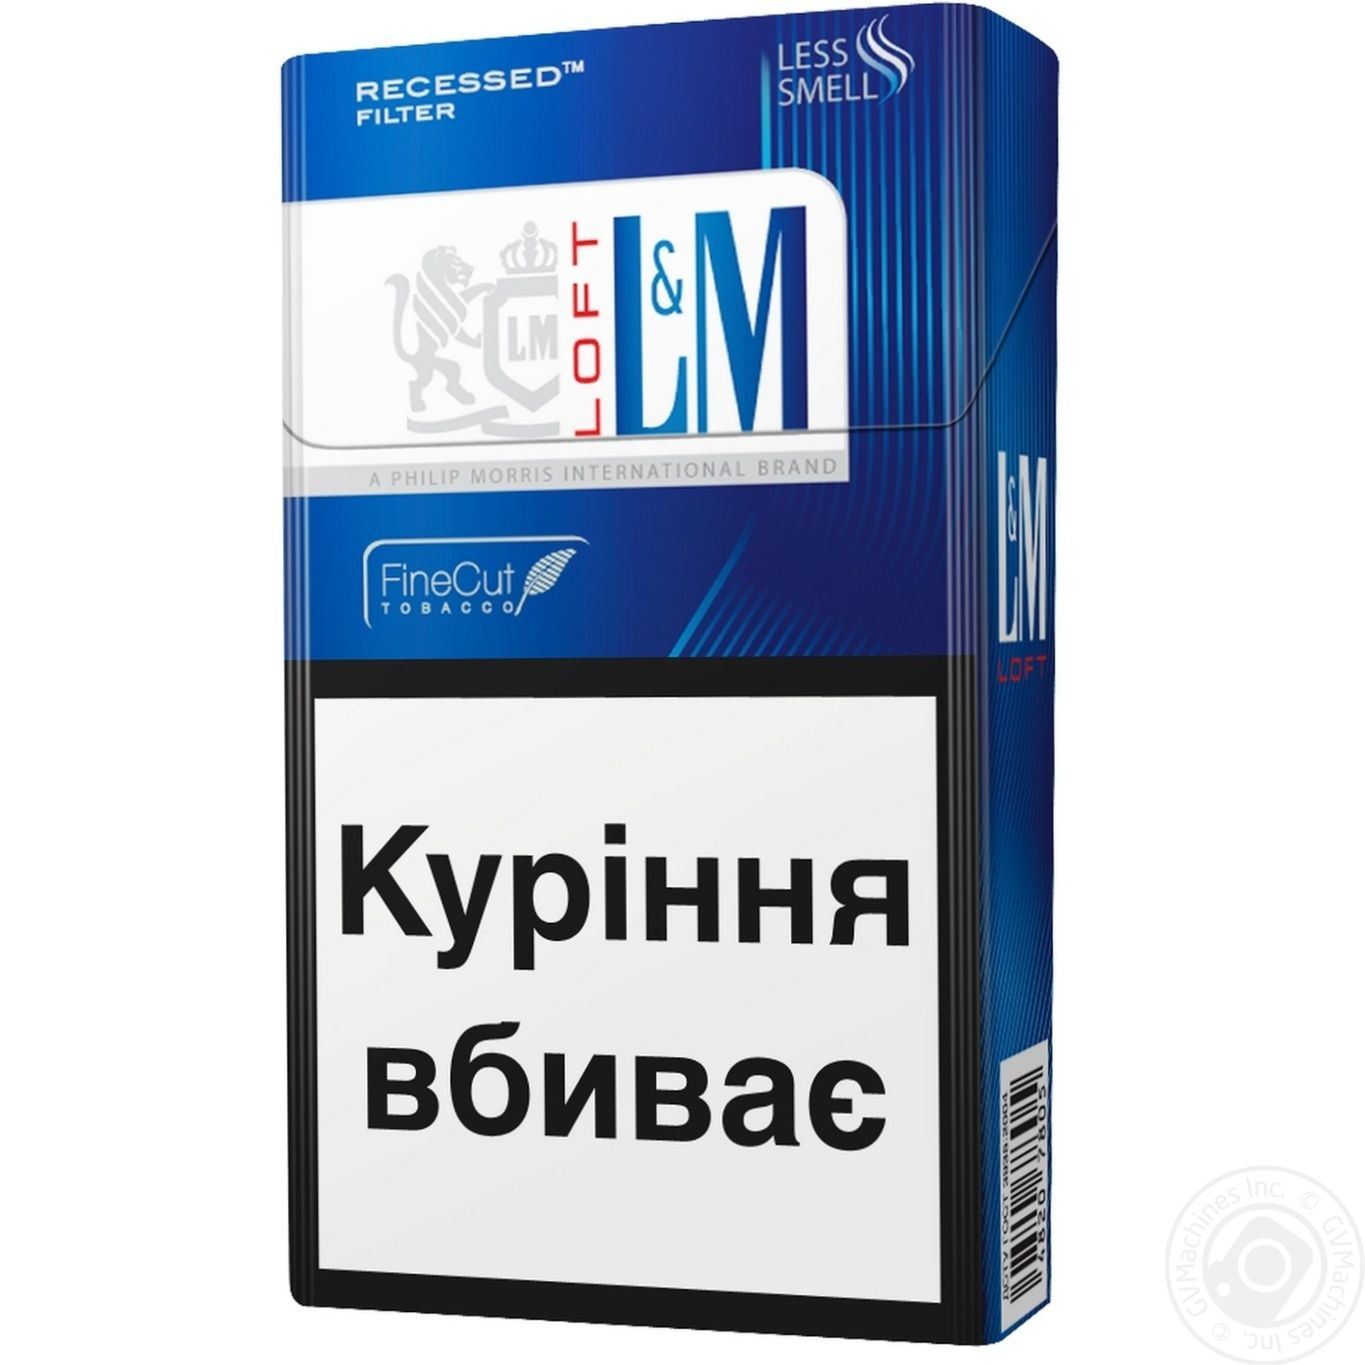 How much is a pack of cigarettes Marlboro in New York 2018